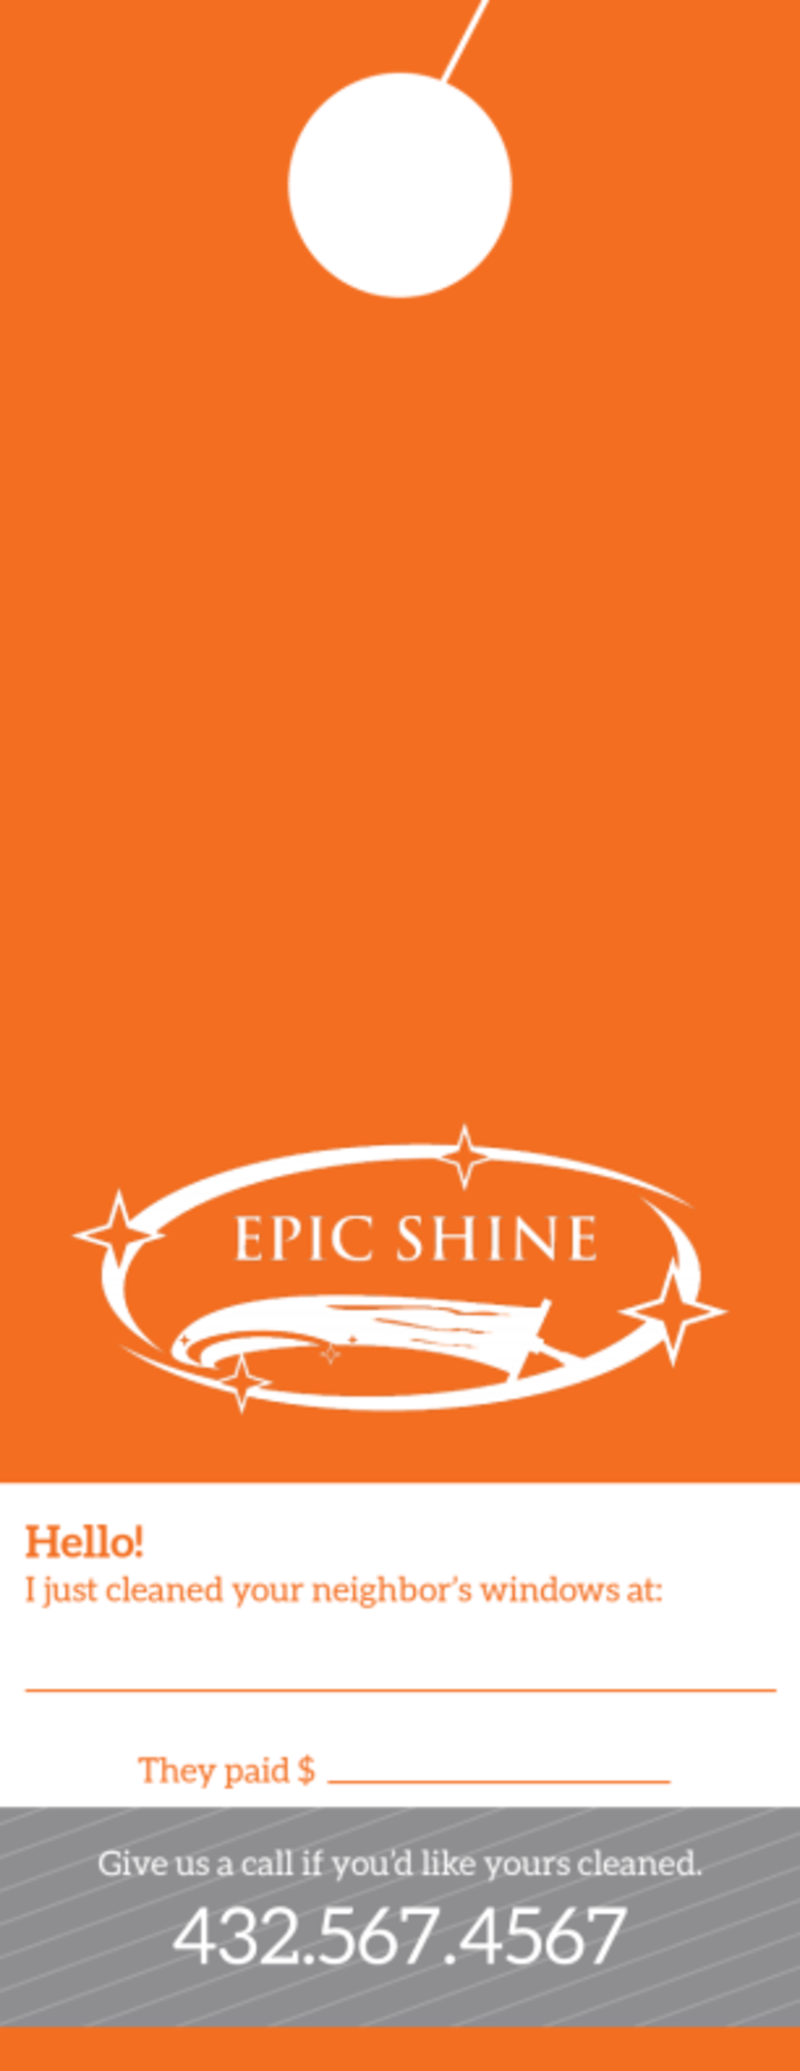 Epic Shine Window Cleaning Door Hanger Template Preview 3